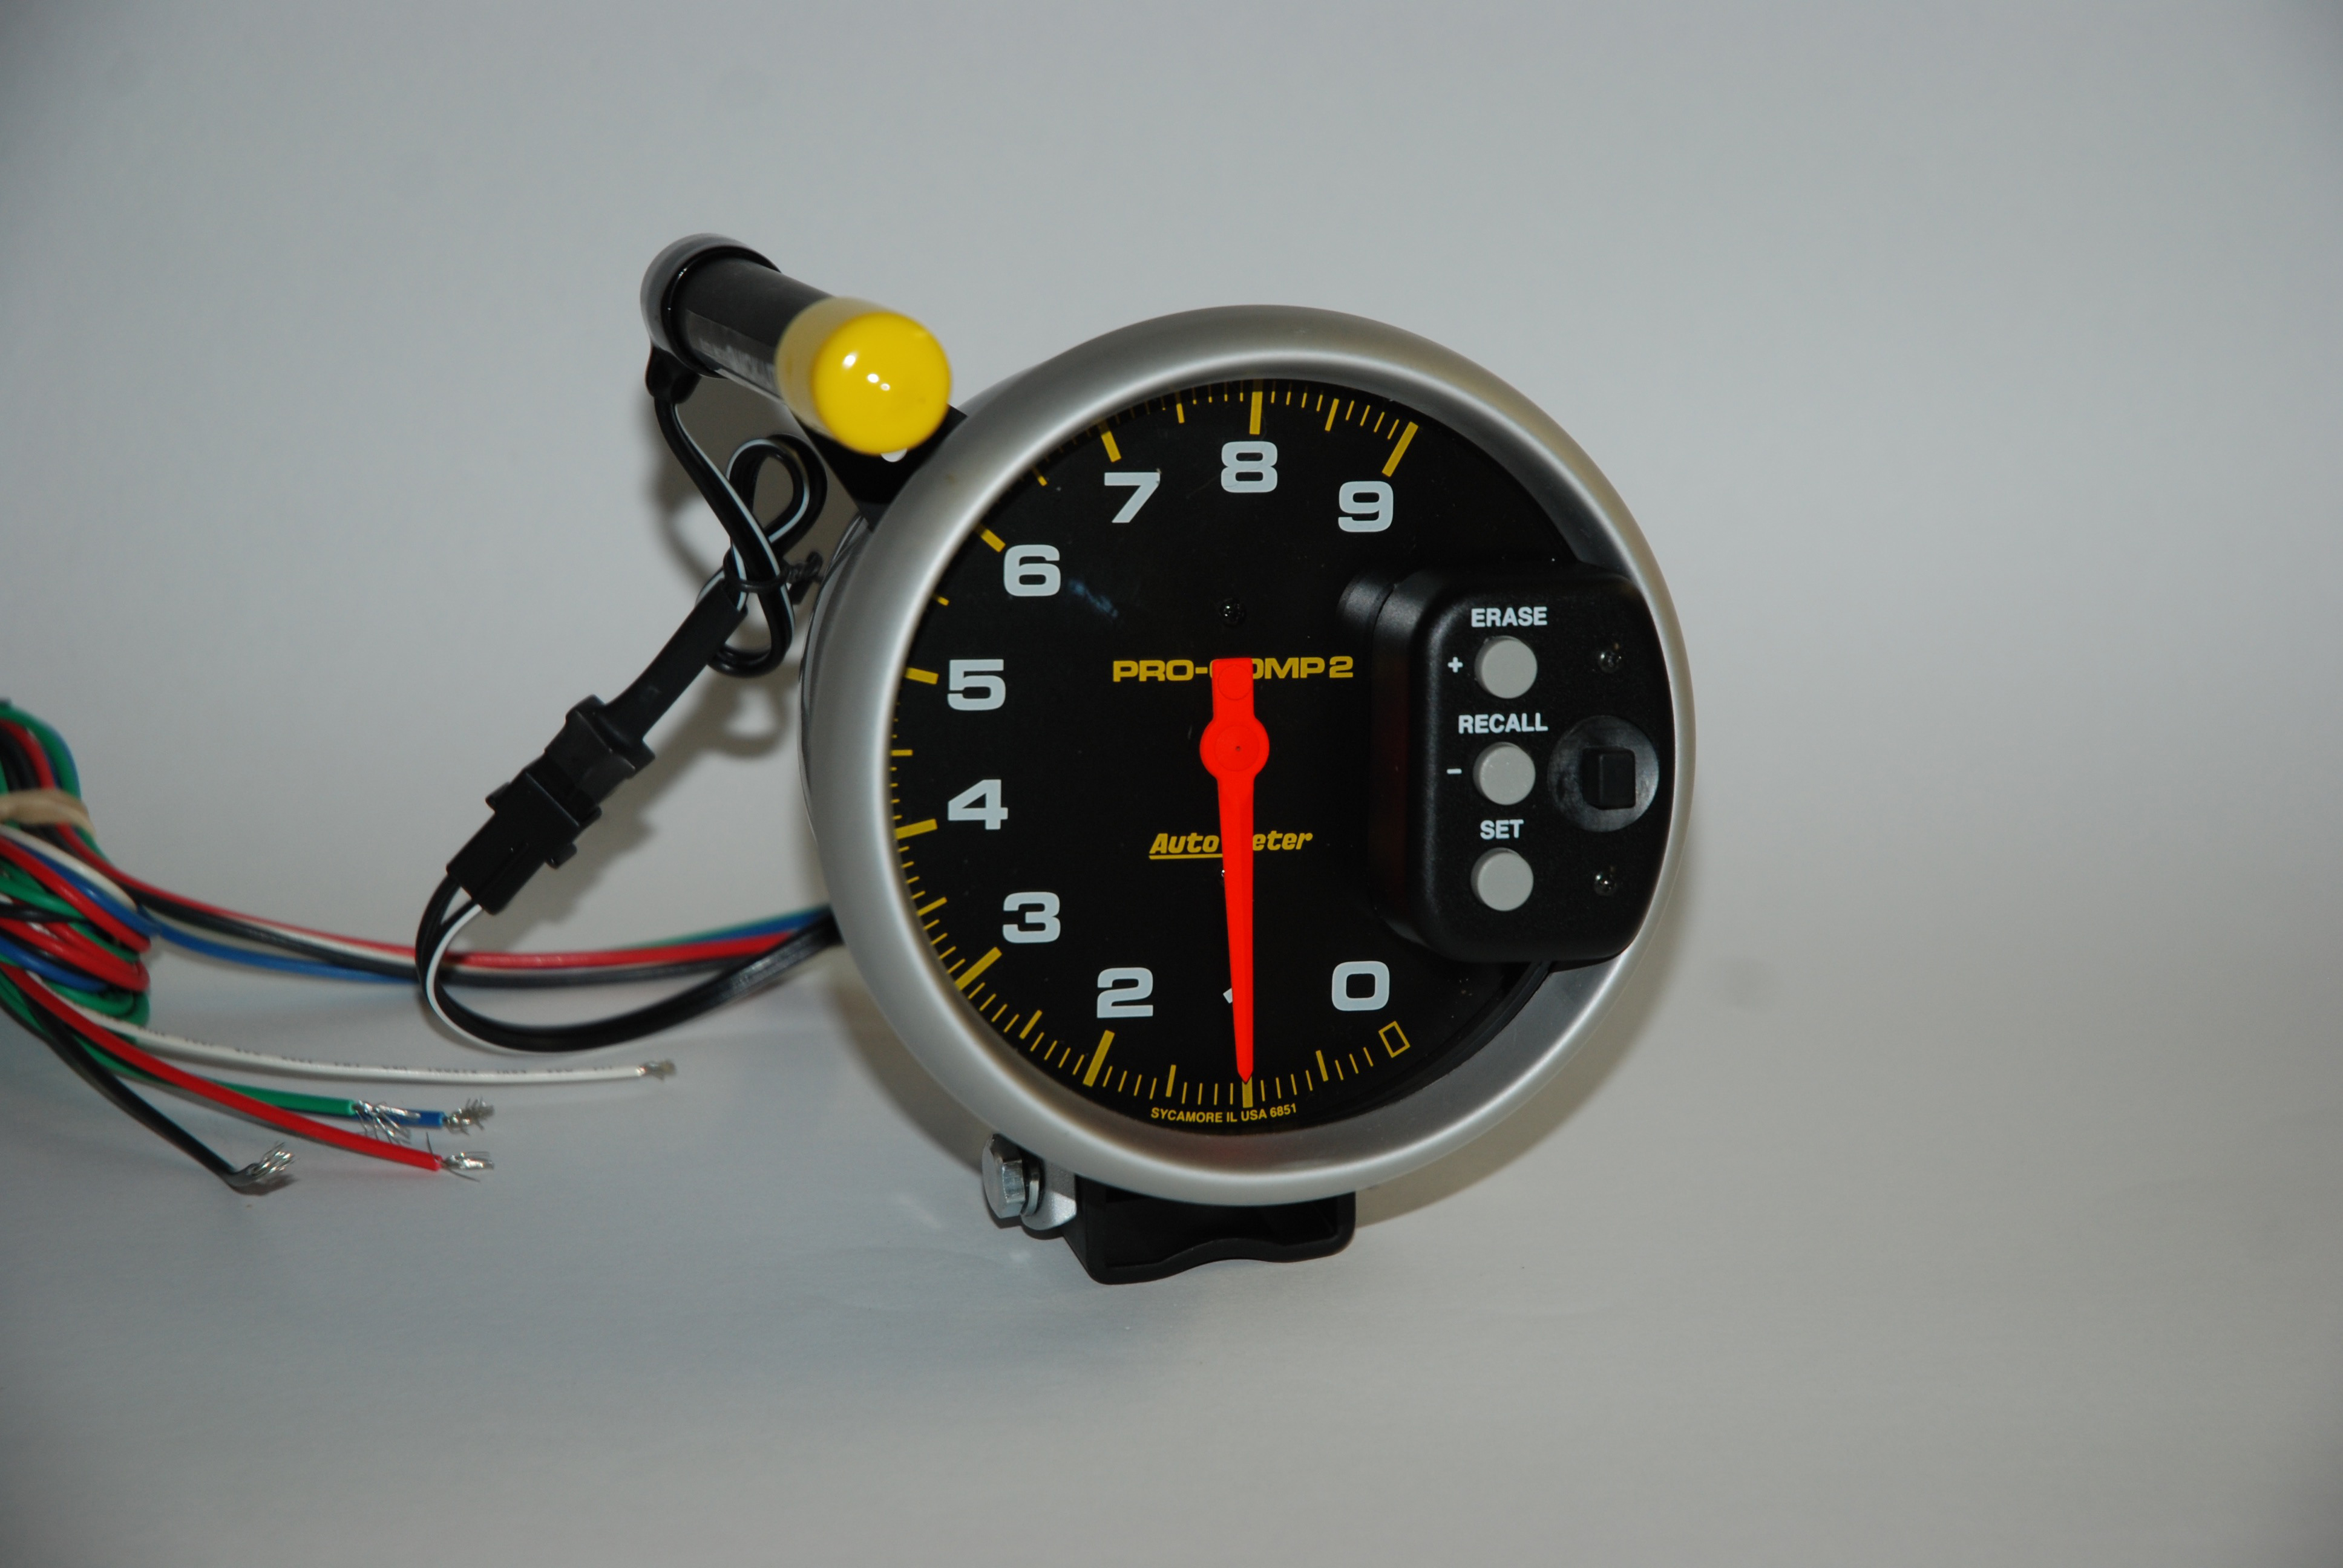 Auto Meter Motorcycle Tach Pro Wiring Best Books Resources Some Of Todays Tachs Incorporate The Two Stage Shift Light That Provides Different